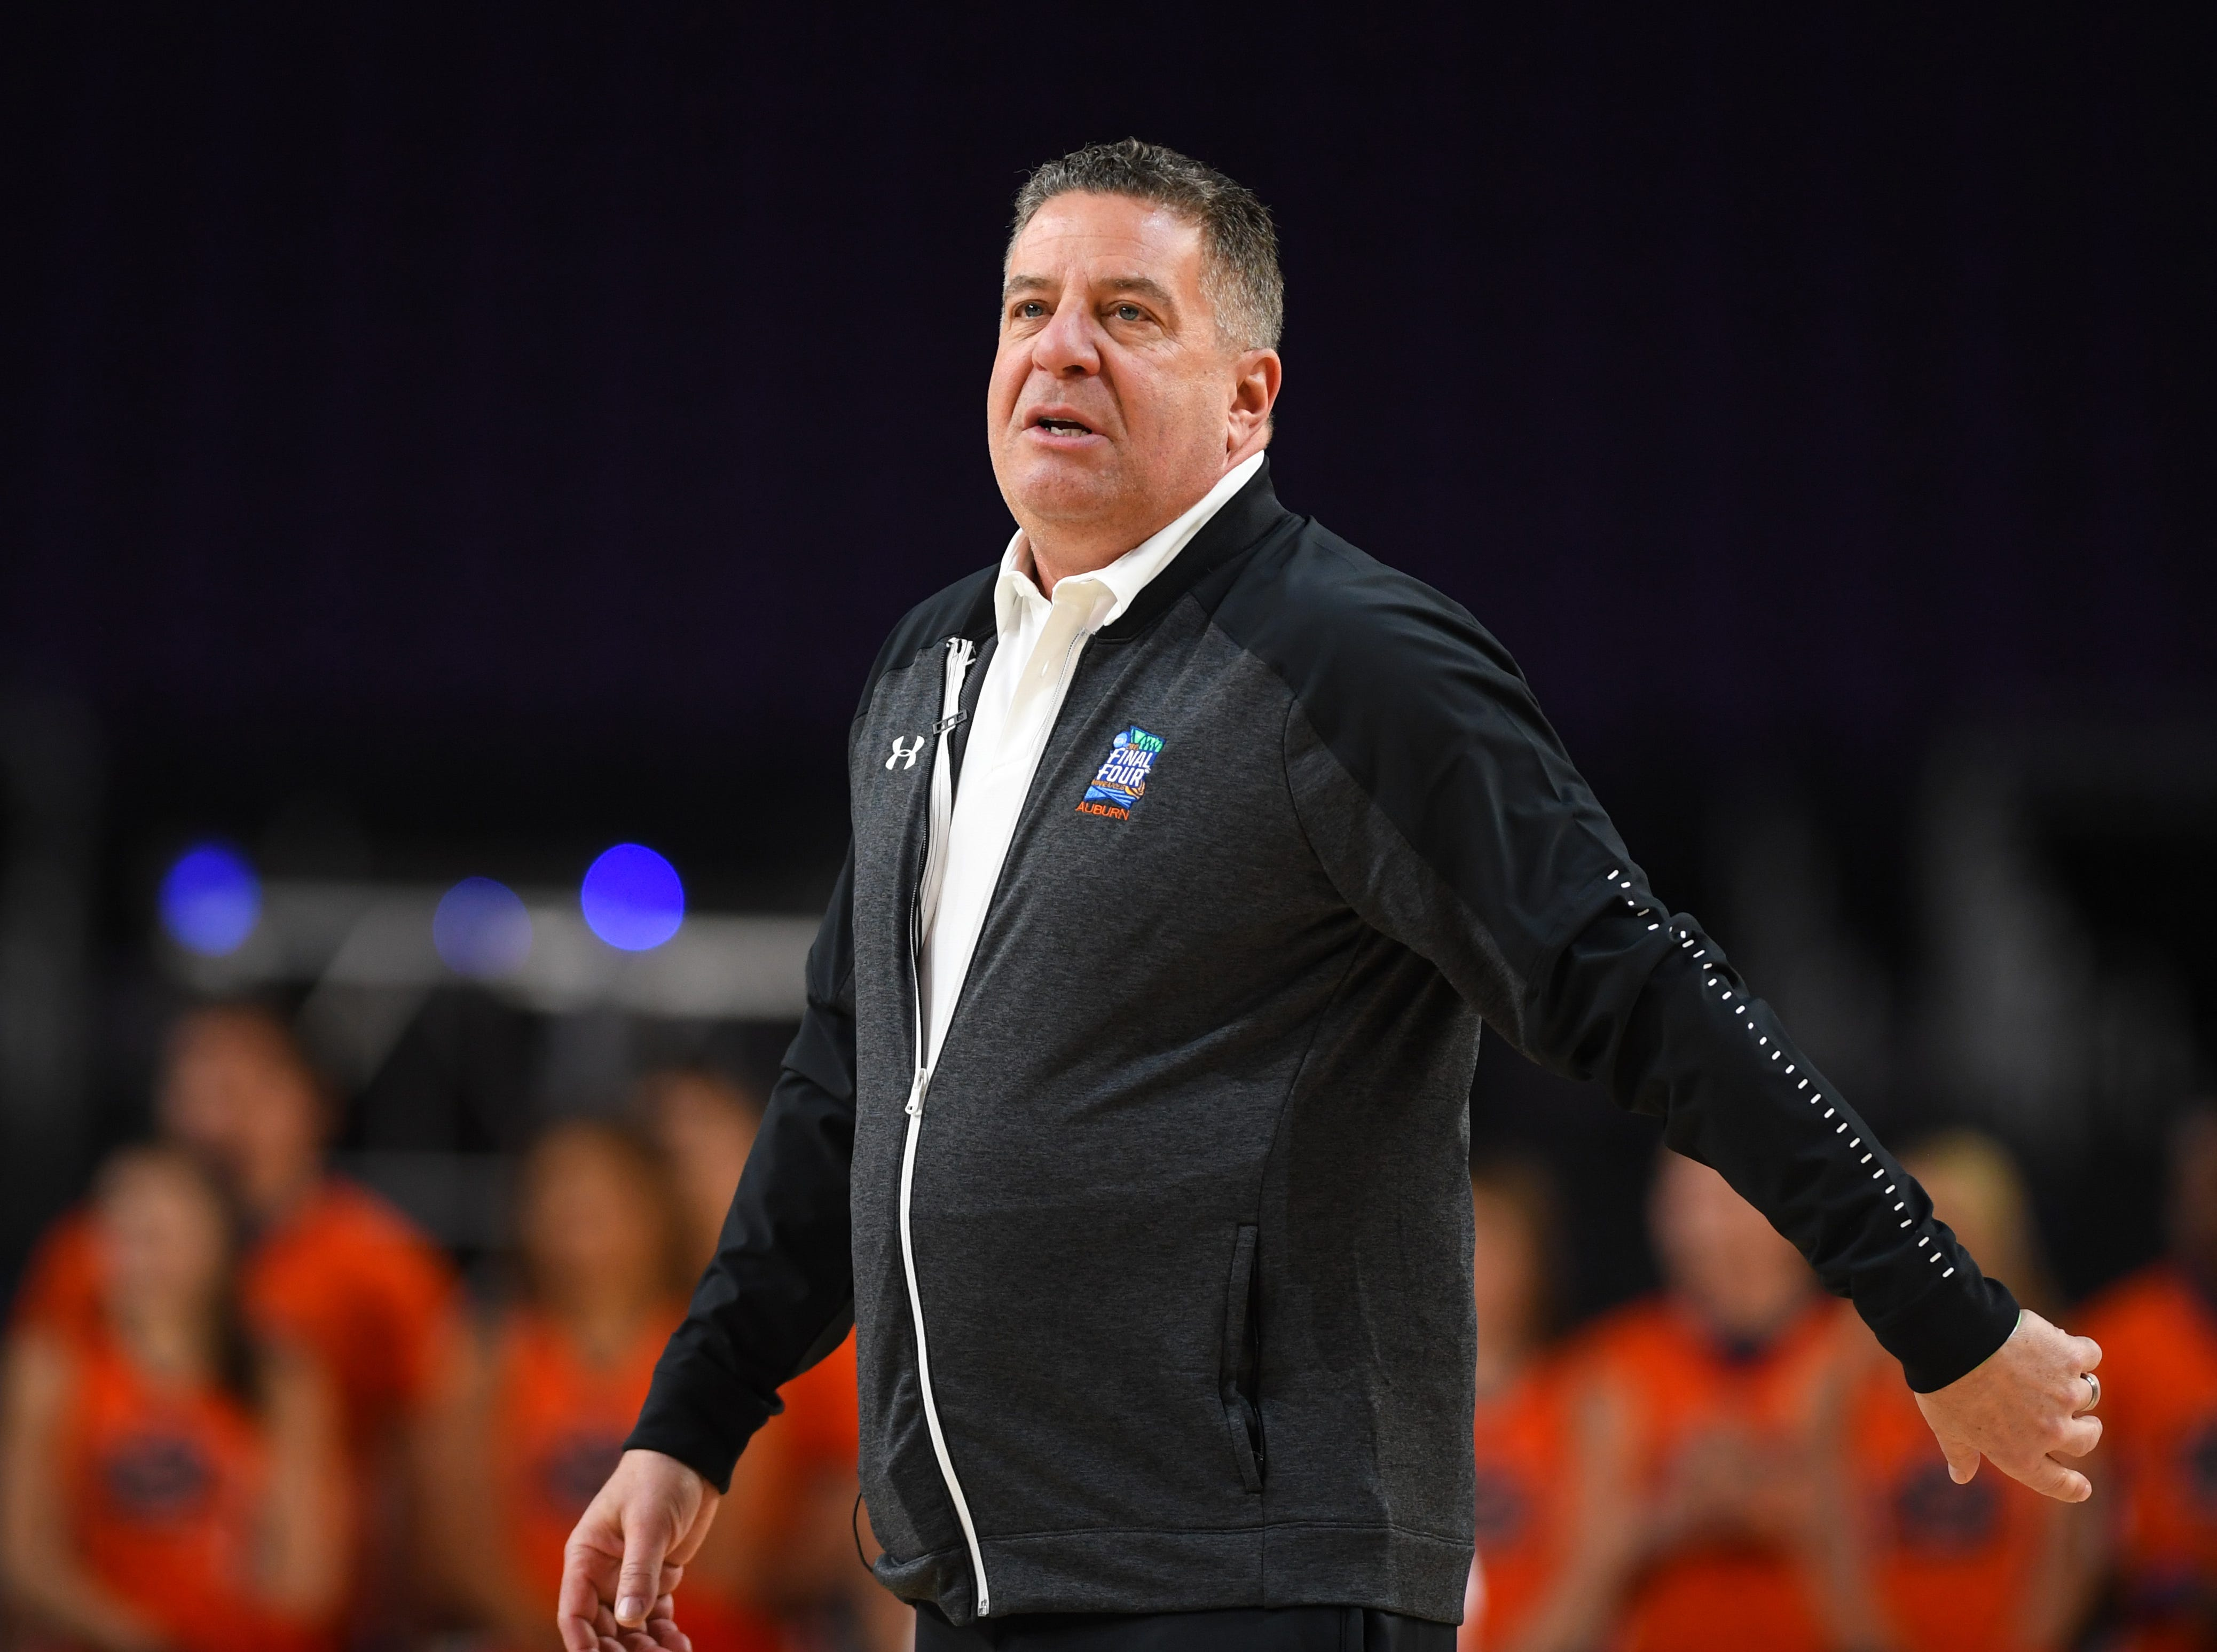 Apr 5, 2019; Minneapolis, MN, USA; Auburn Tigers head coach Bruce Pearl during practice for the 2019 men's Final Four at US Bank Stadium. Mandatory Credit: Bob Donnan-USA TODAY Sports